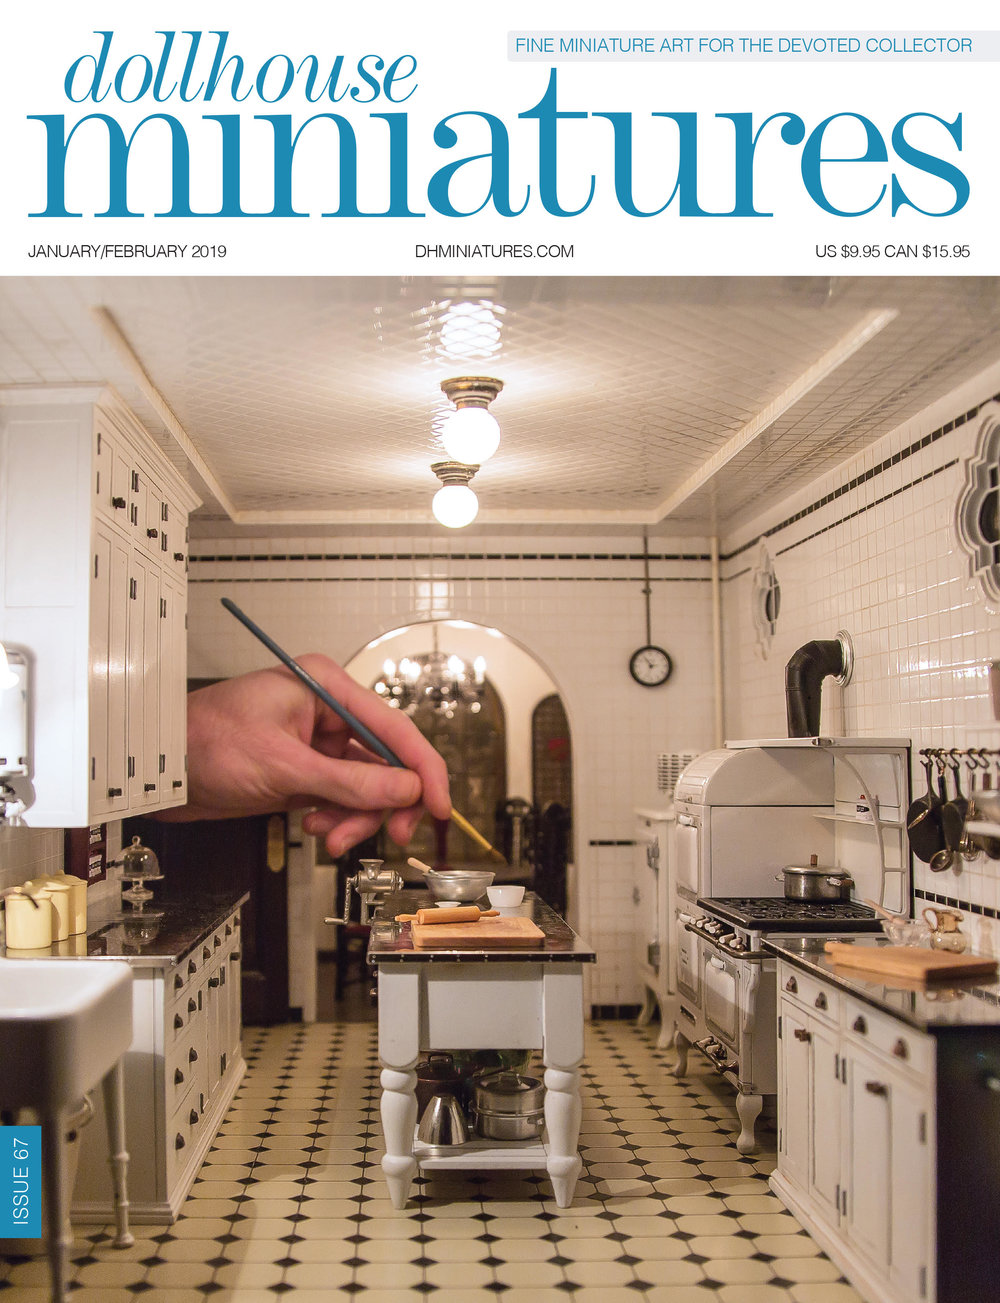 The Jan/Feb issue of Dollhouse Miniatures features highlights from the 2018 Fall Show! - For more Dollhouse Miniatures, check out:www.americanminiaturist.com/www.instagram.com/americanminiaturist/www.dhminiatures.com/www.instagram.com/dhminiatures/